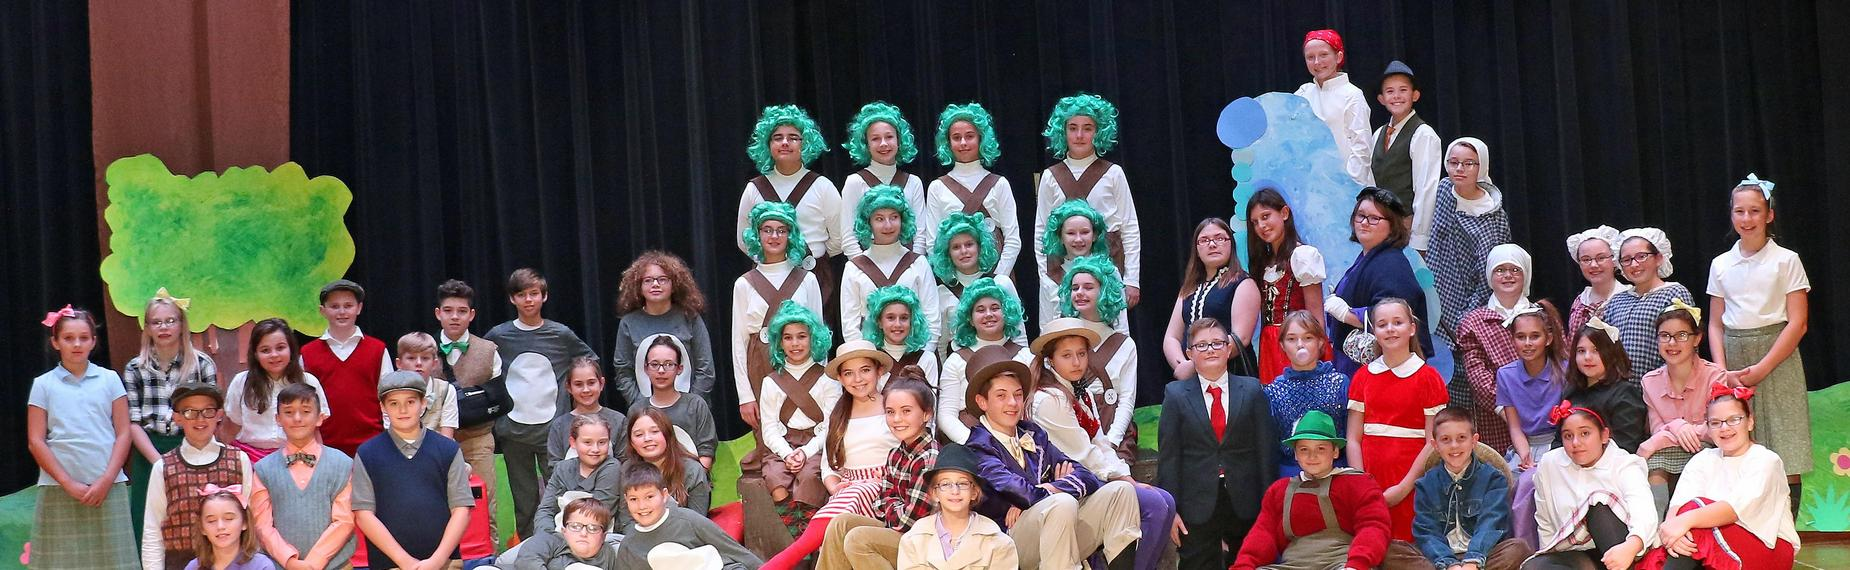 Willy Wonka Kids Cast - 6th grade musical